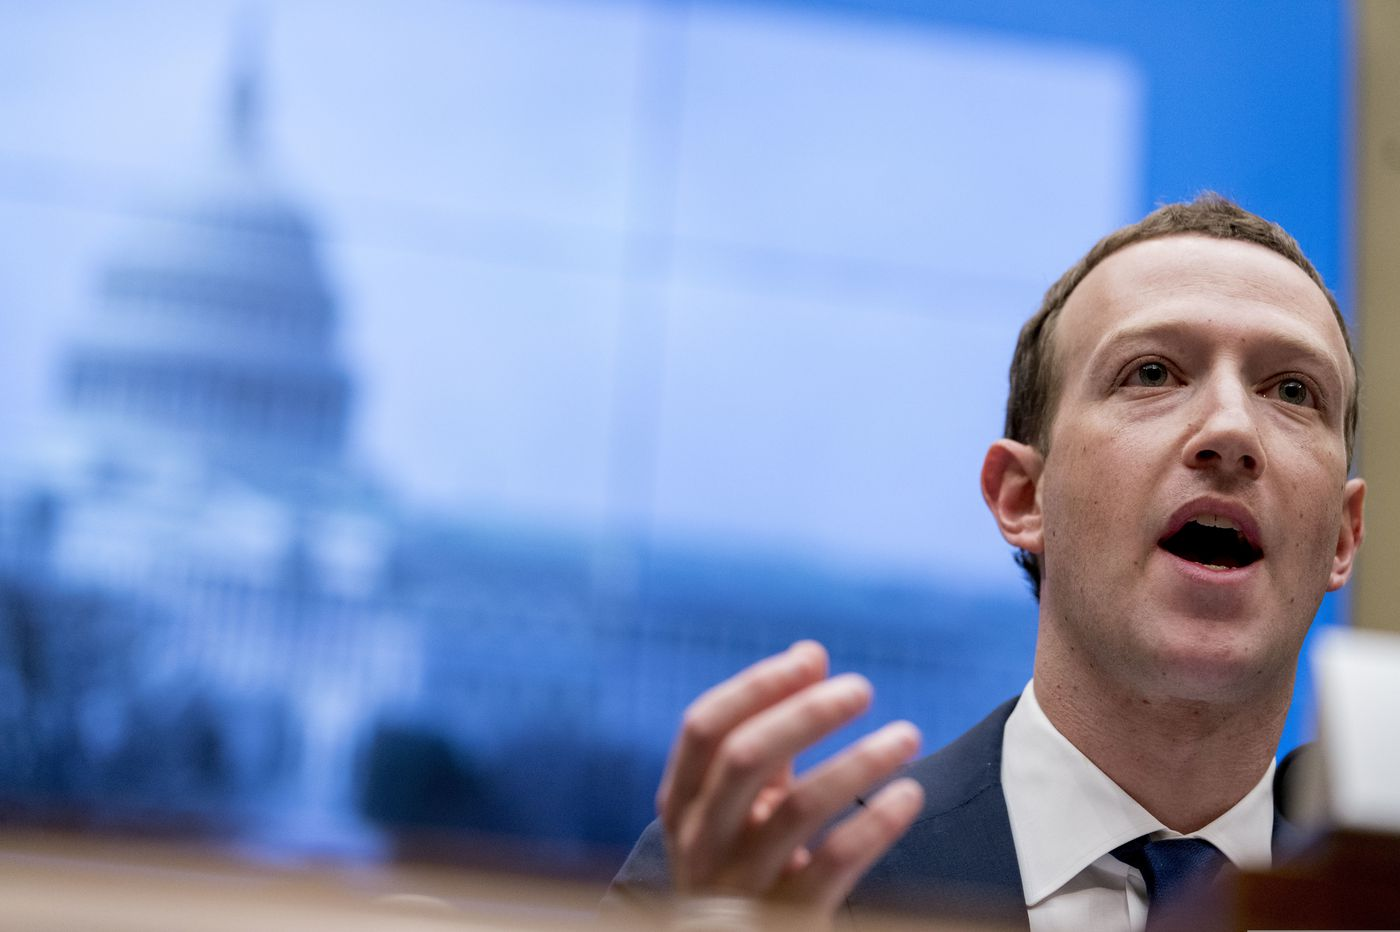 Zuckerberg fears 'erosion of truth' but defends allowing politicians to lie in ads